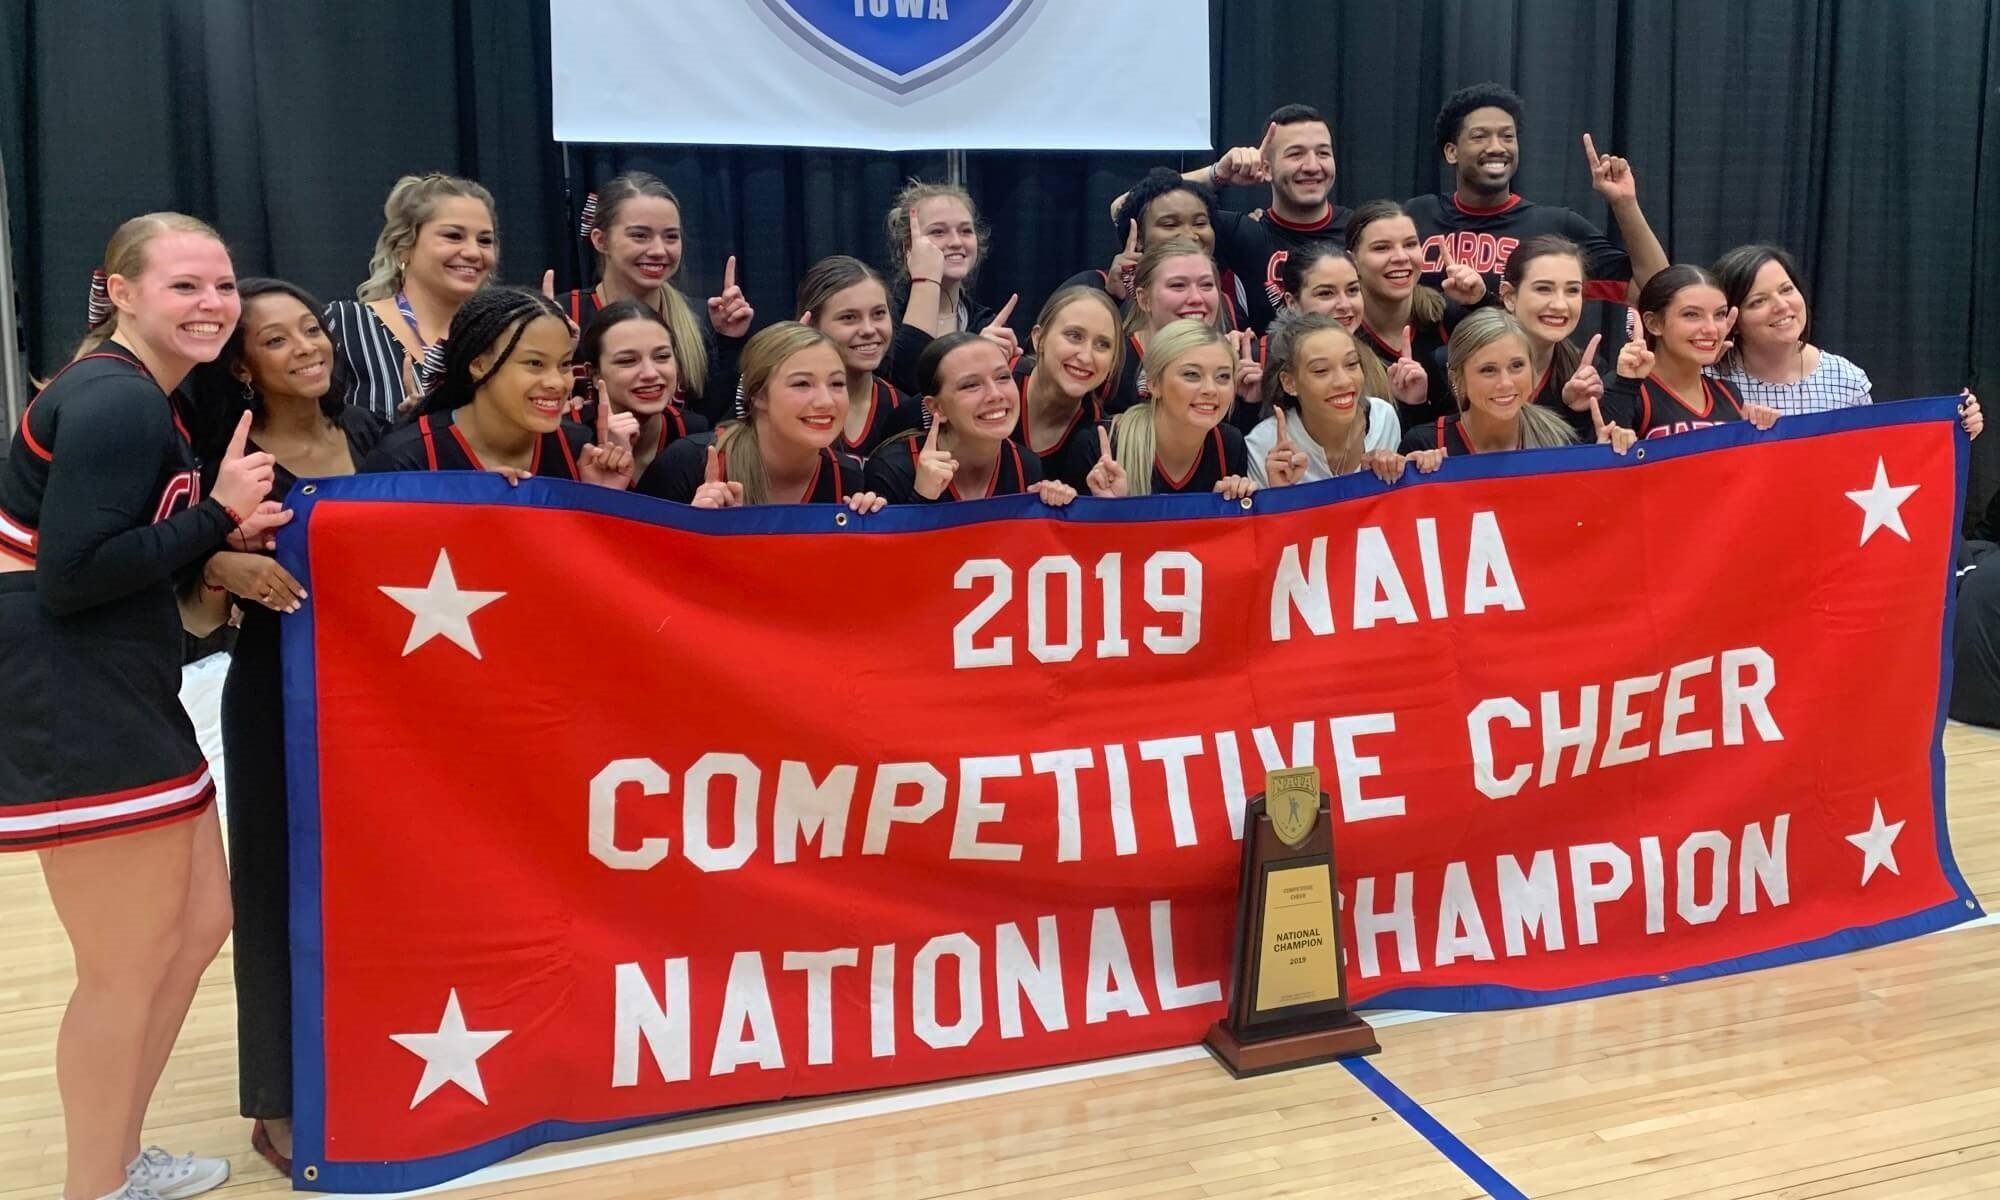 Cheer National Champions 2019